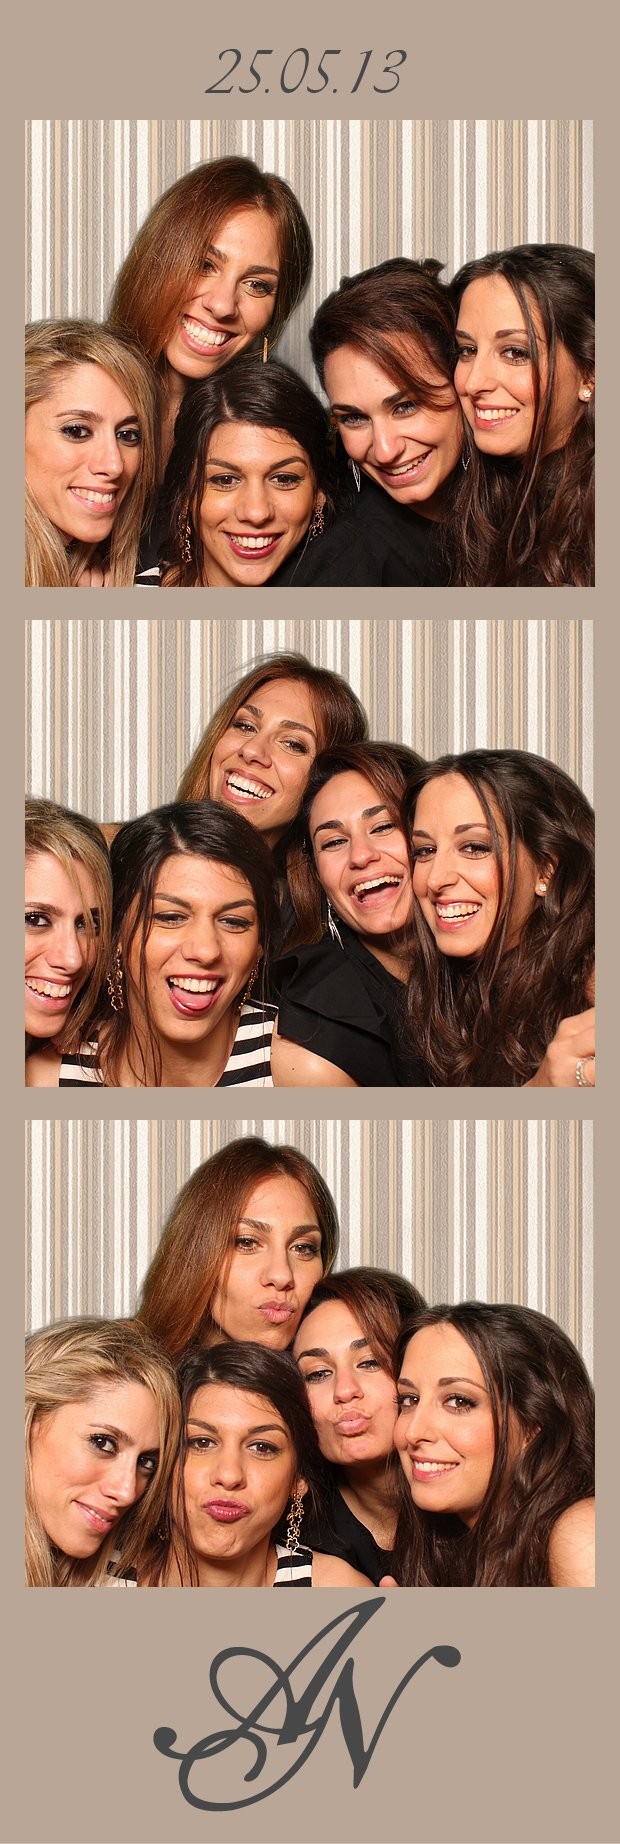 Photobooth_Weddings_Samples (57)